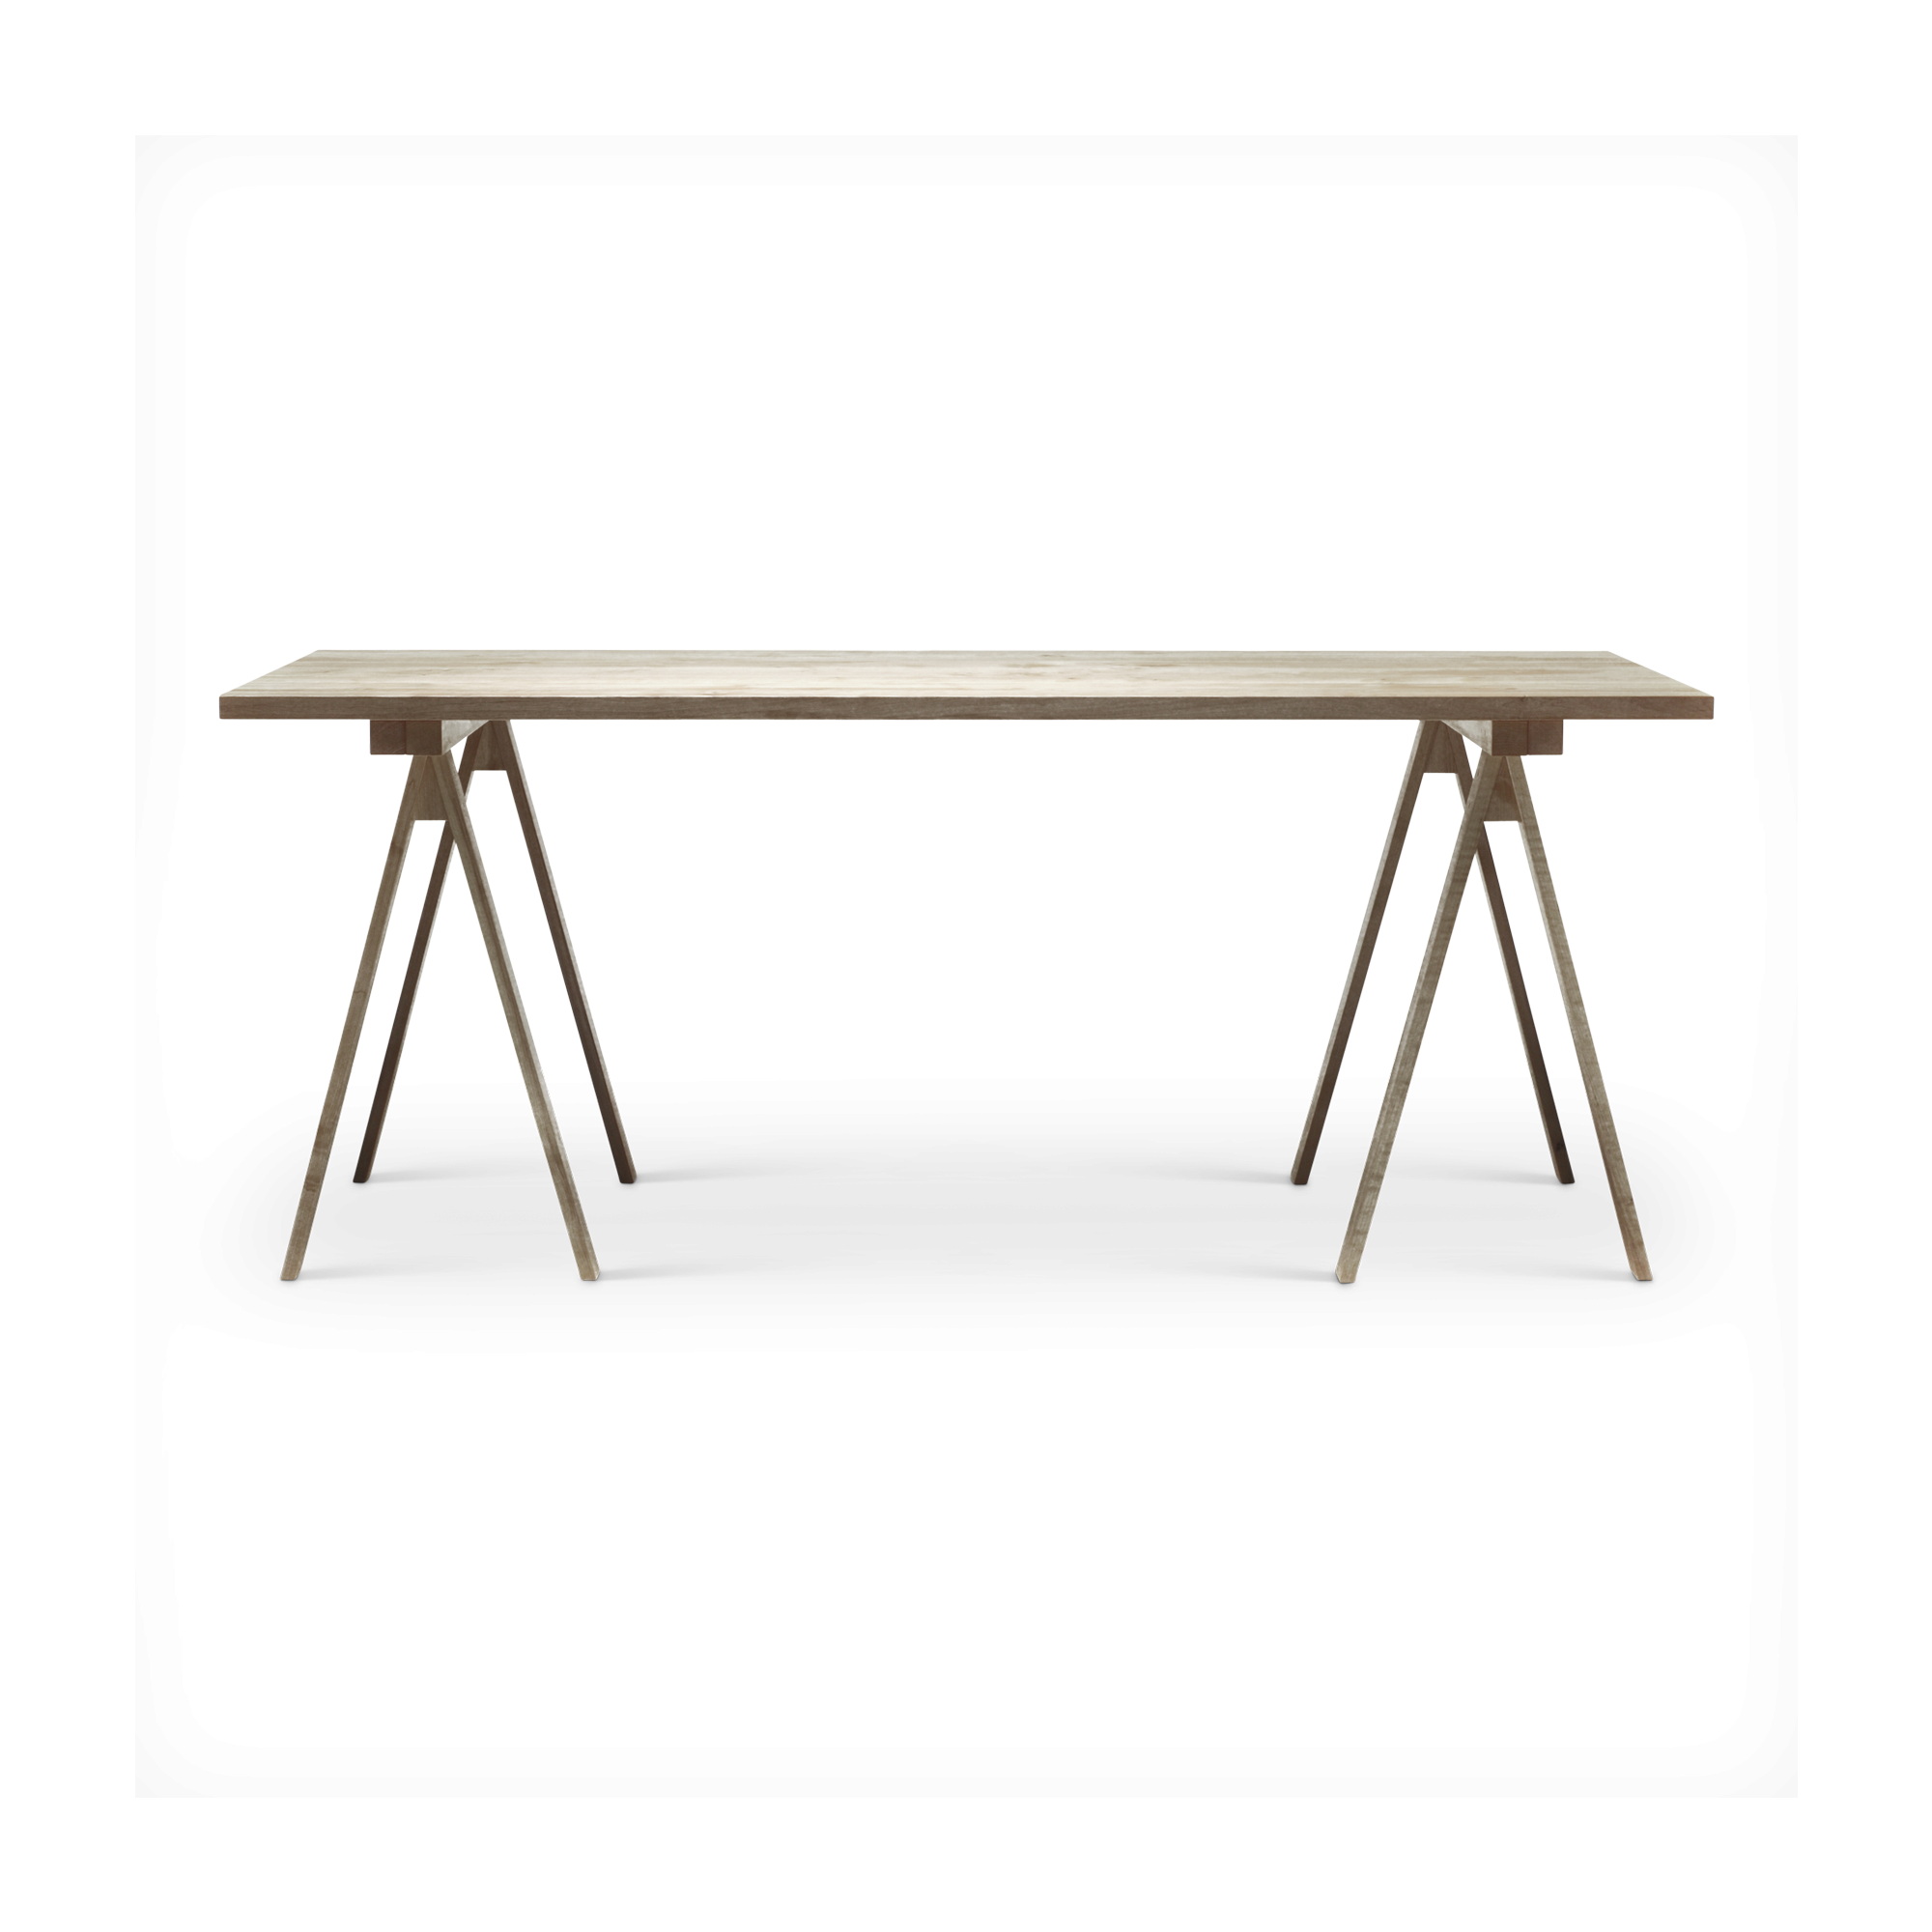 arkitecture-ppk2-3-4-table-top